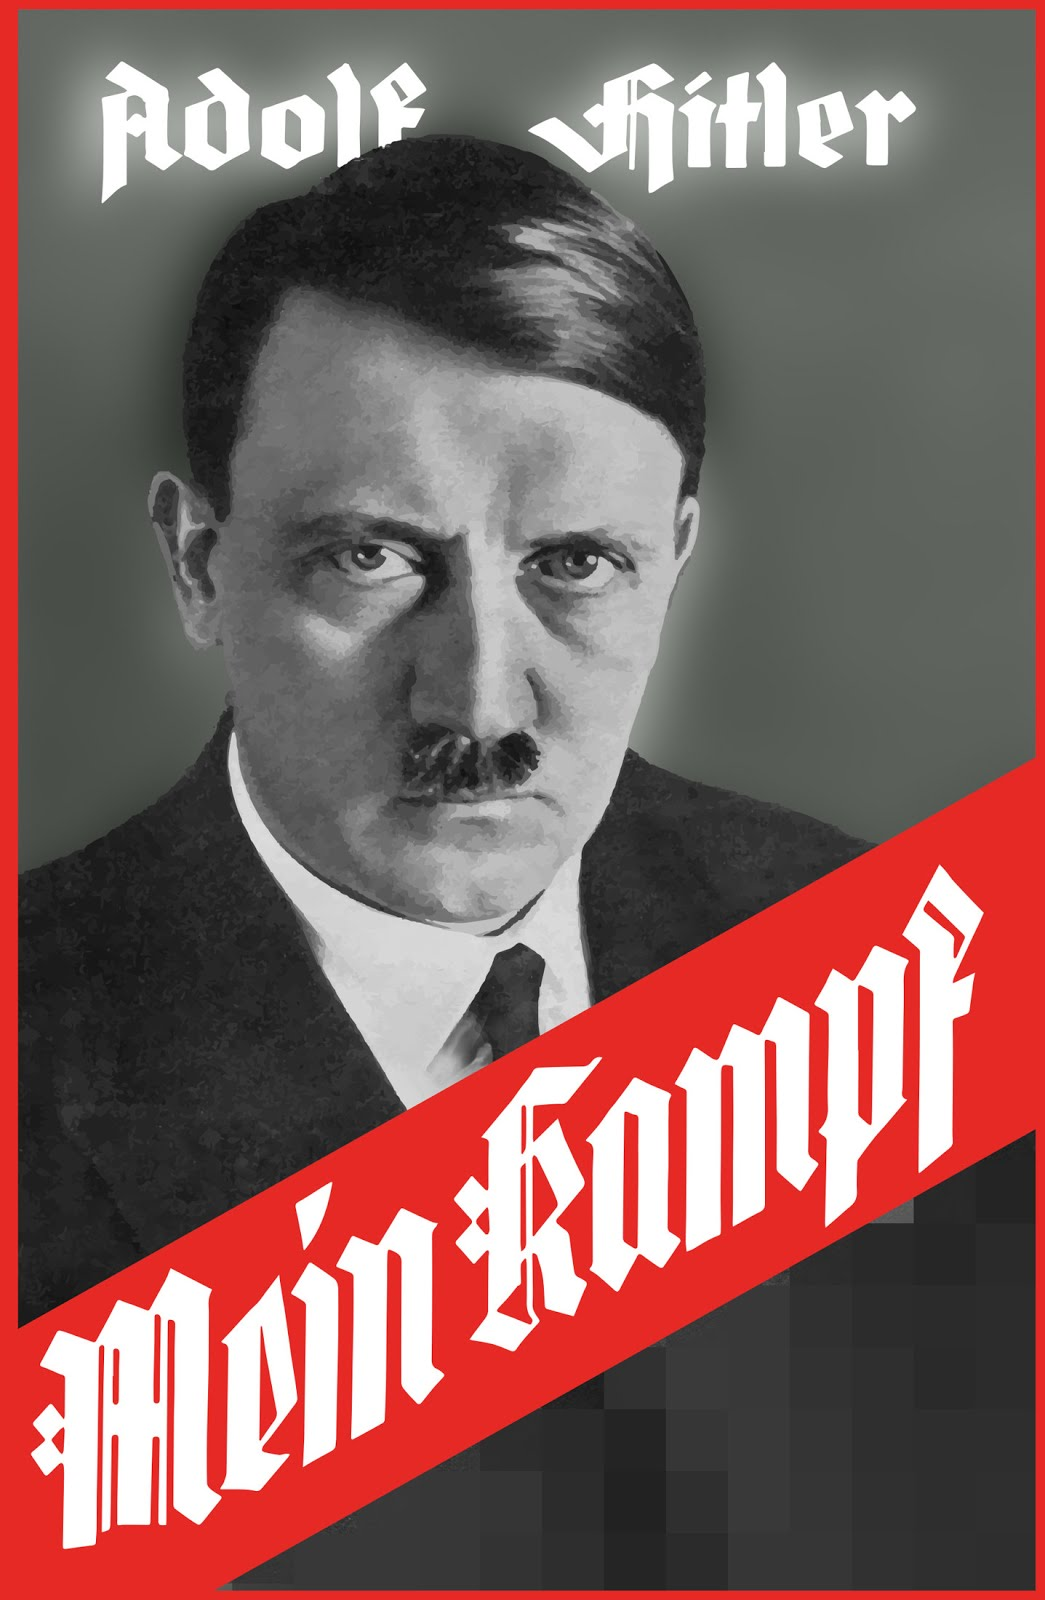 adolf hitler mein kampf. Black Bedroom Furniture Sets. Home Design Ideas